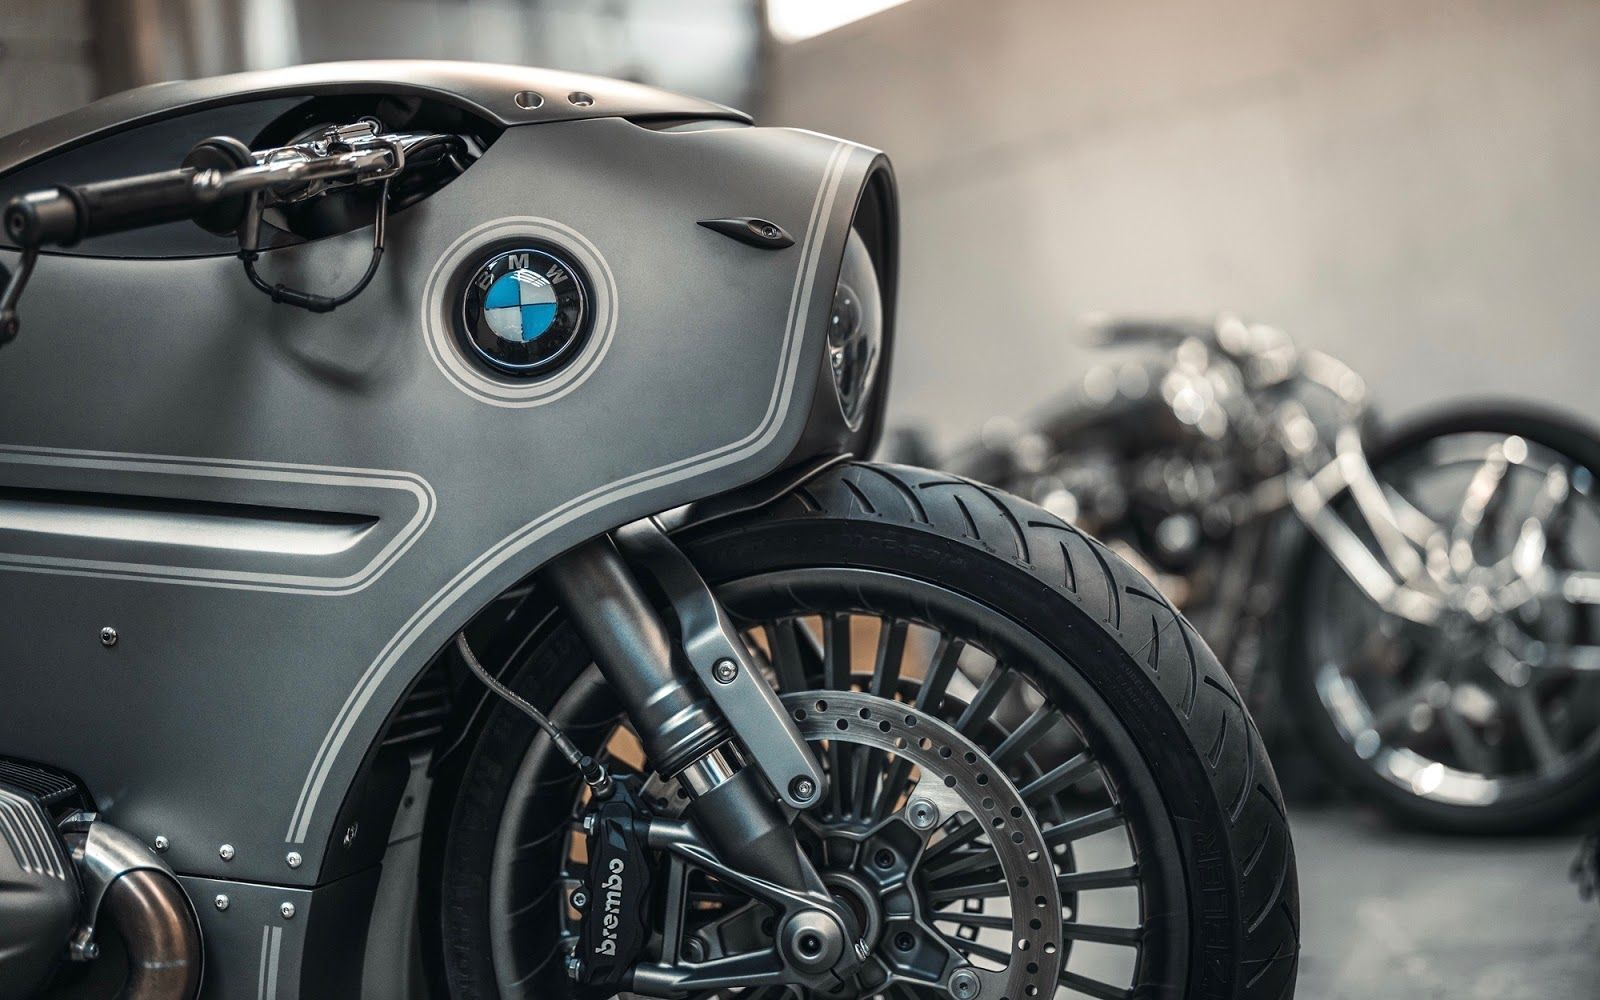 Mikhail Smolânovym of Moscow's Zillers Garage teamed up with John Red Design to turn a BMW R NineT in to a menacing metal masterpiece that's straight out of a sci-fi flick.